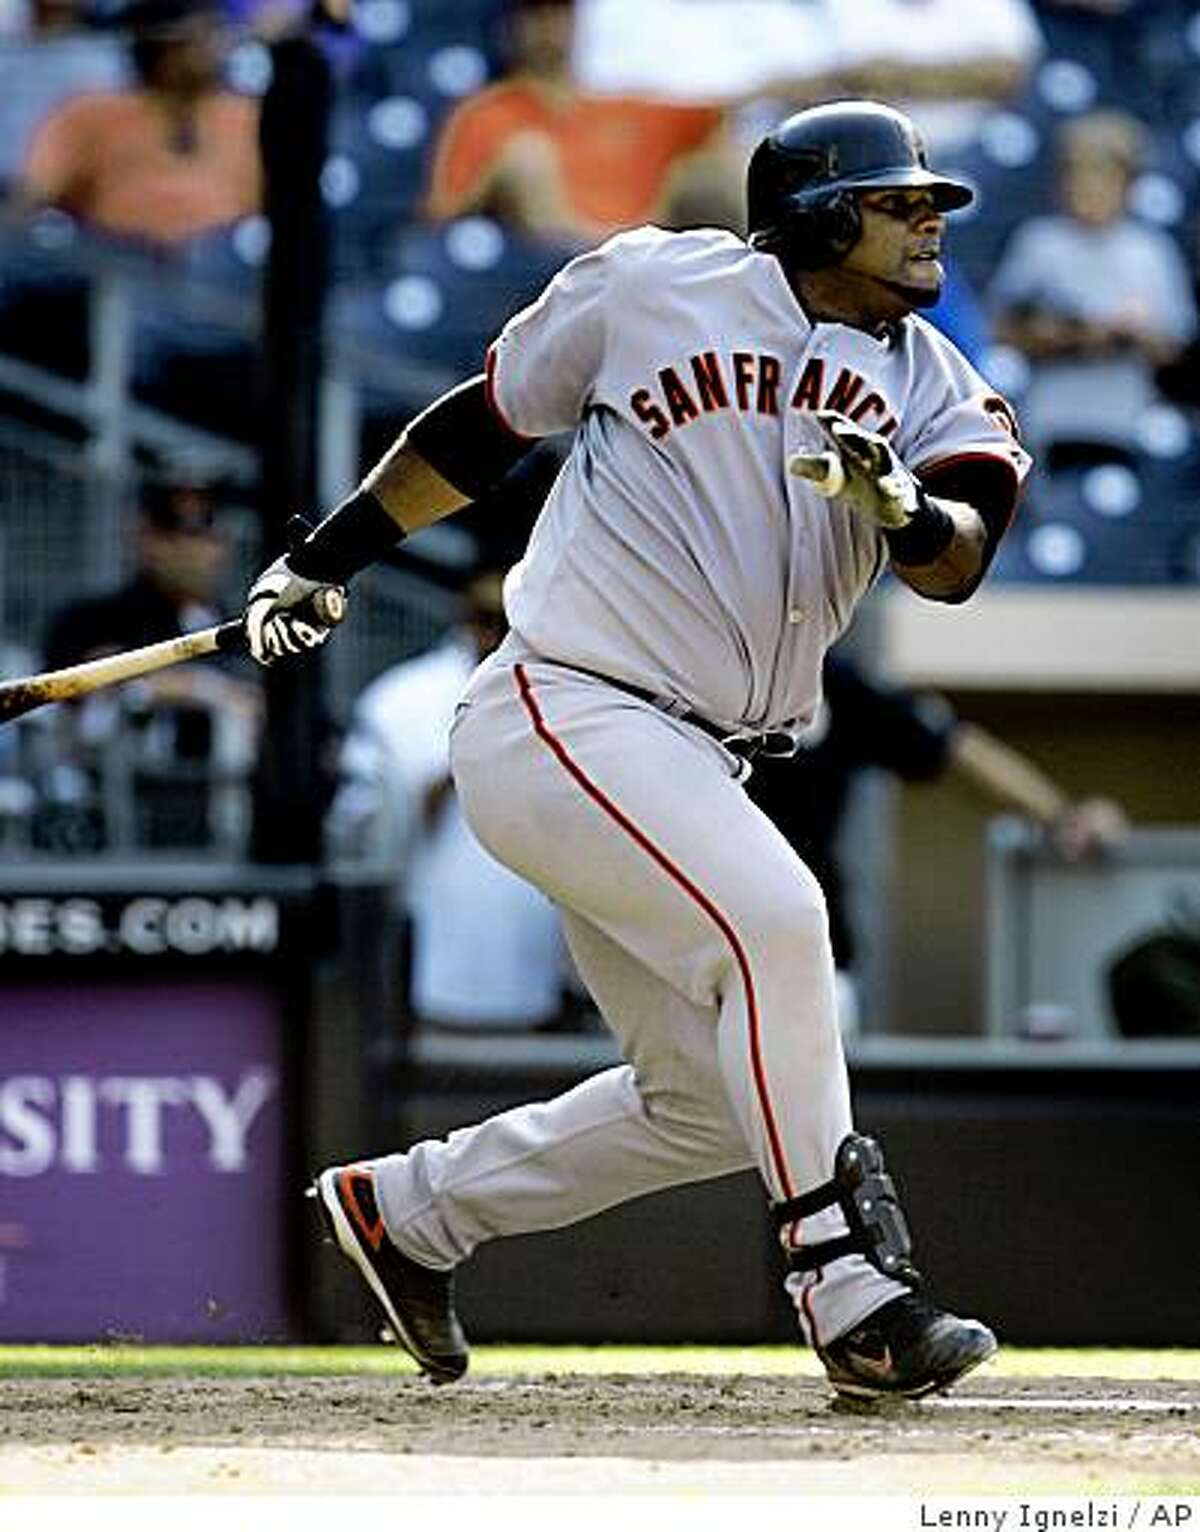 Pablo Sandoval leads off the tenth inning with a double, that eventually led to the winning run, against the San Diego Padres in the Giants' 8-6 victory in their baseball game Sunday, Sept. 14. 2008, in San Diego.